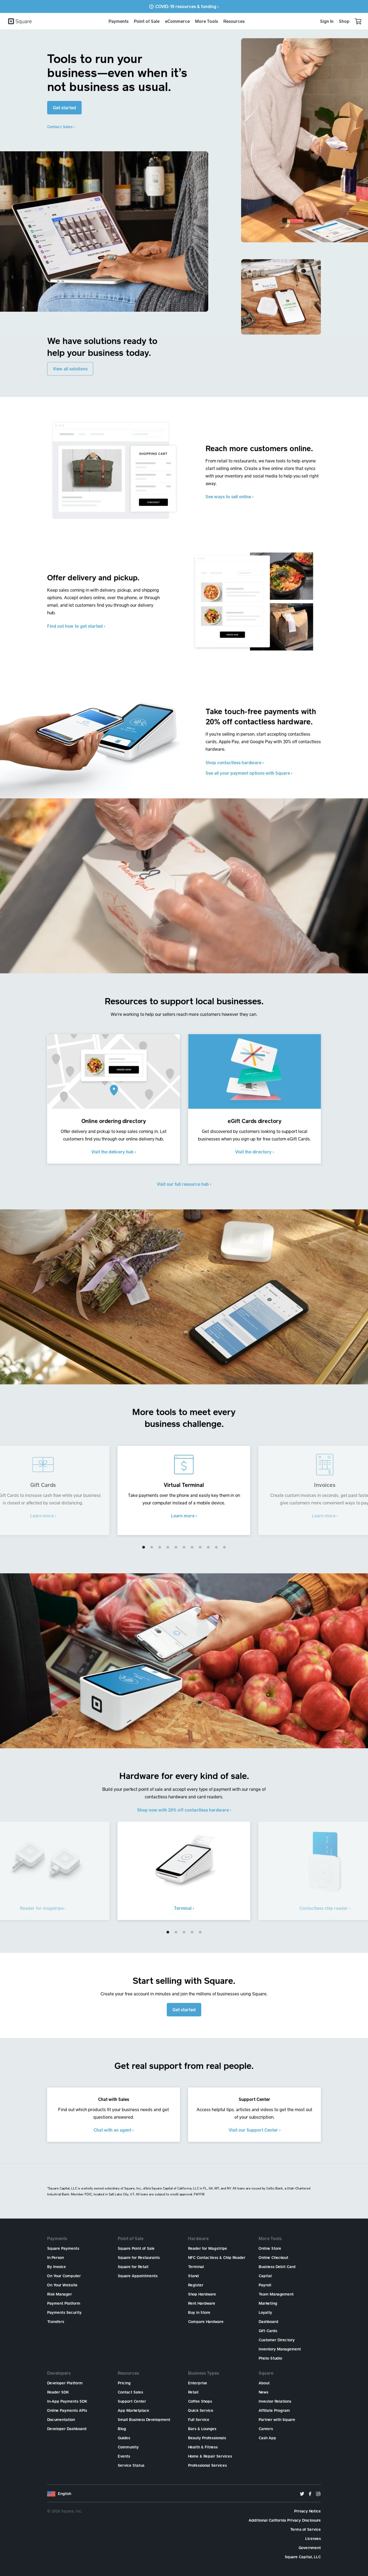 Square: Solutions & Tools to Grow Your Business